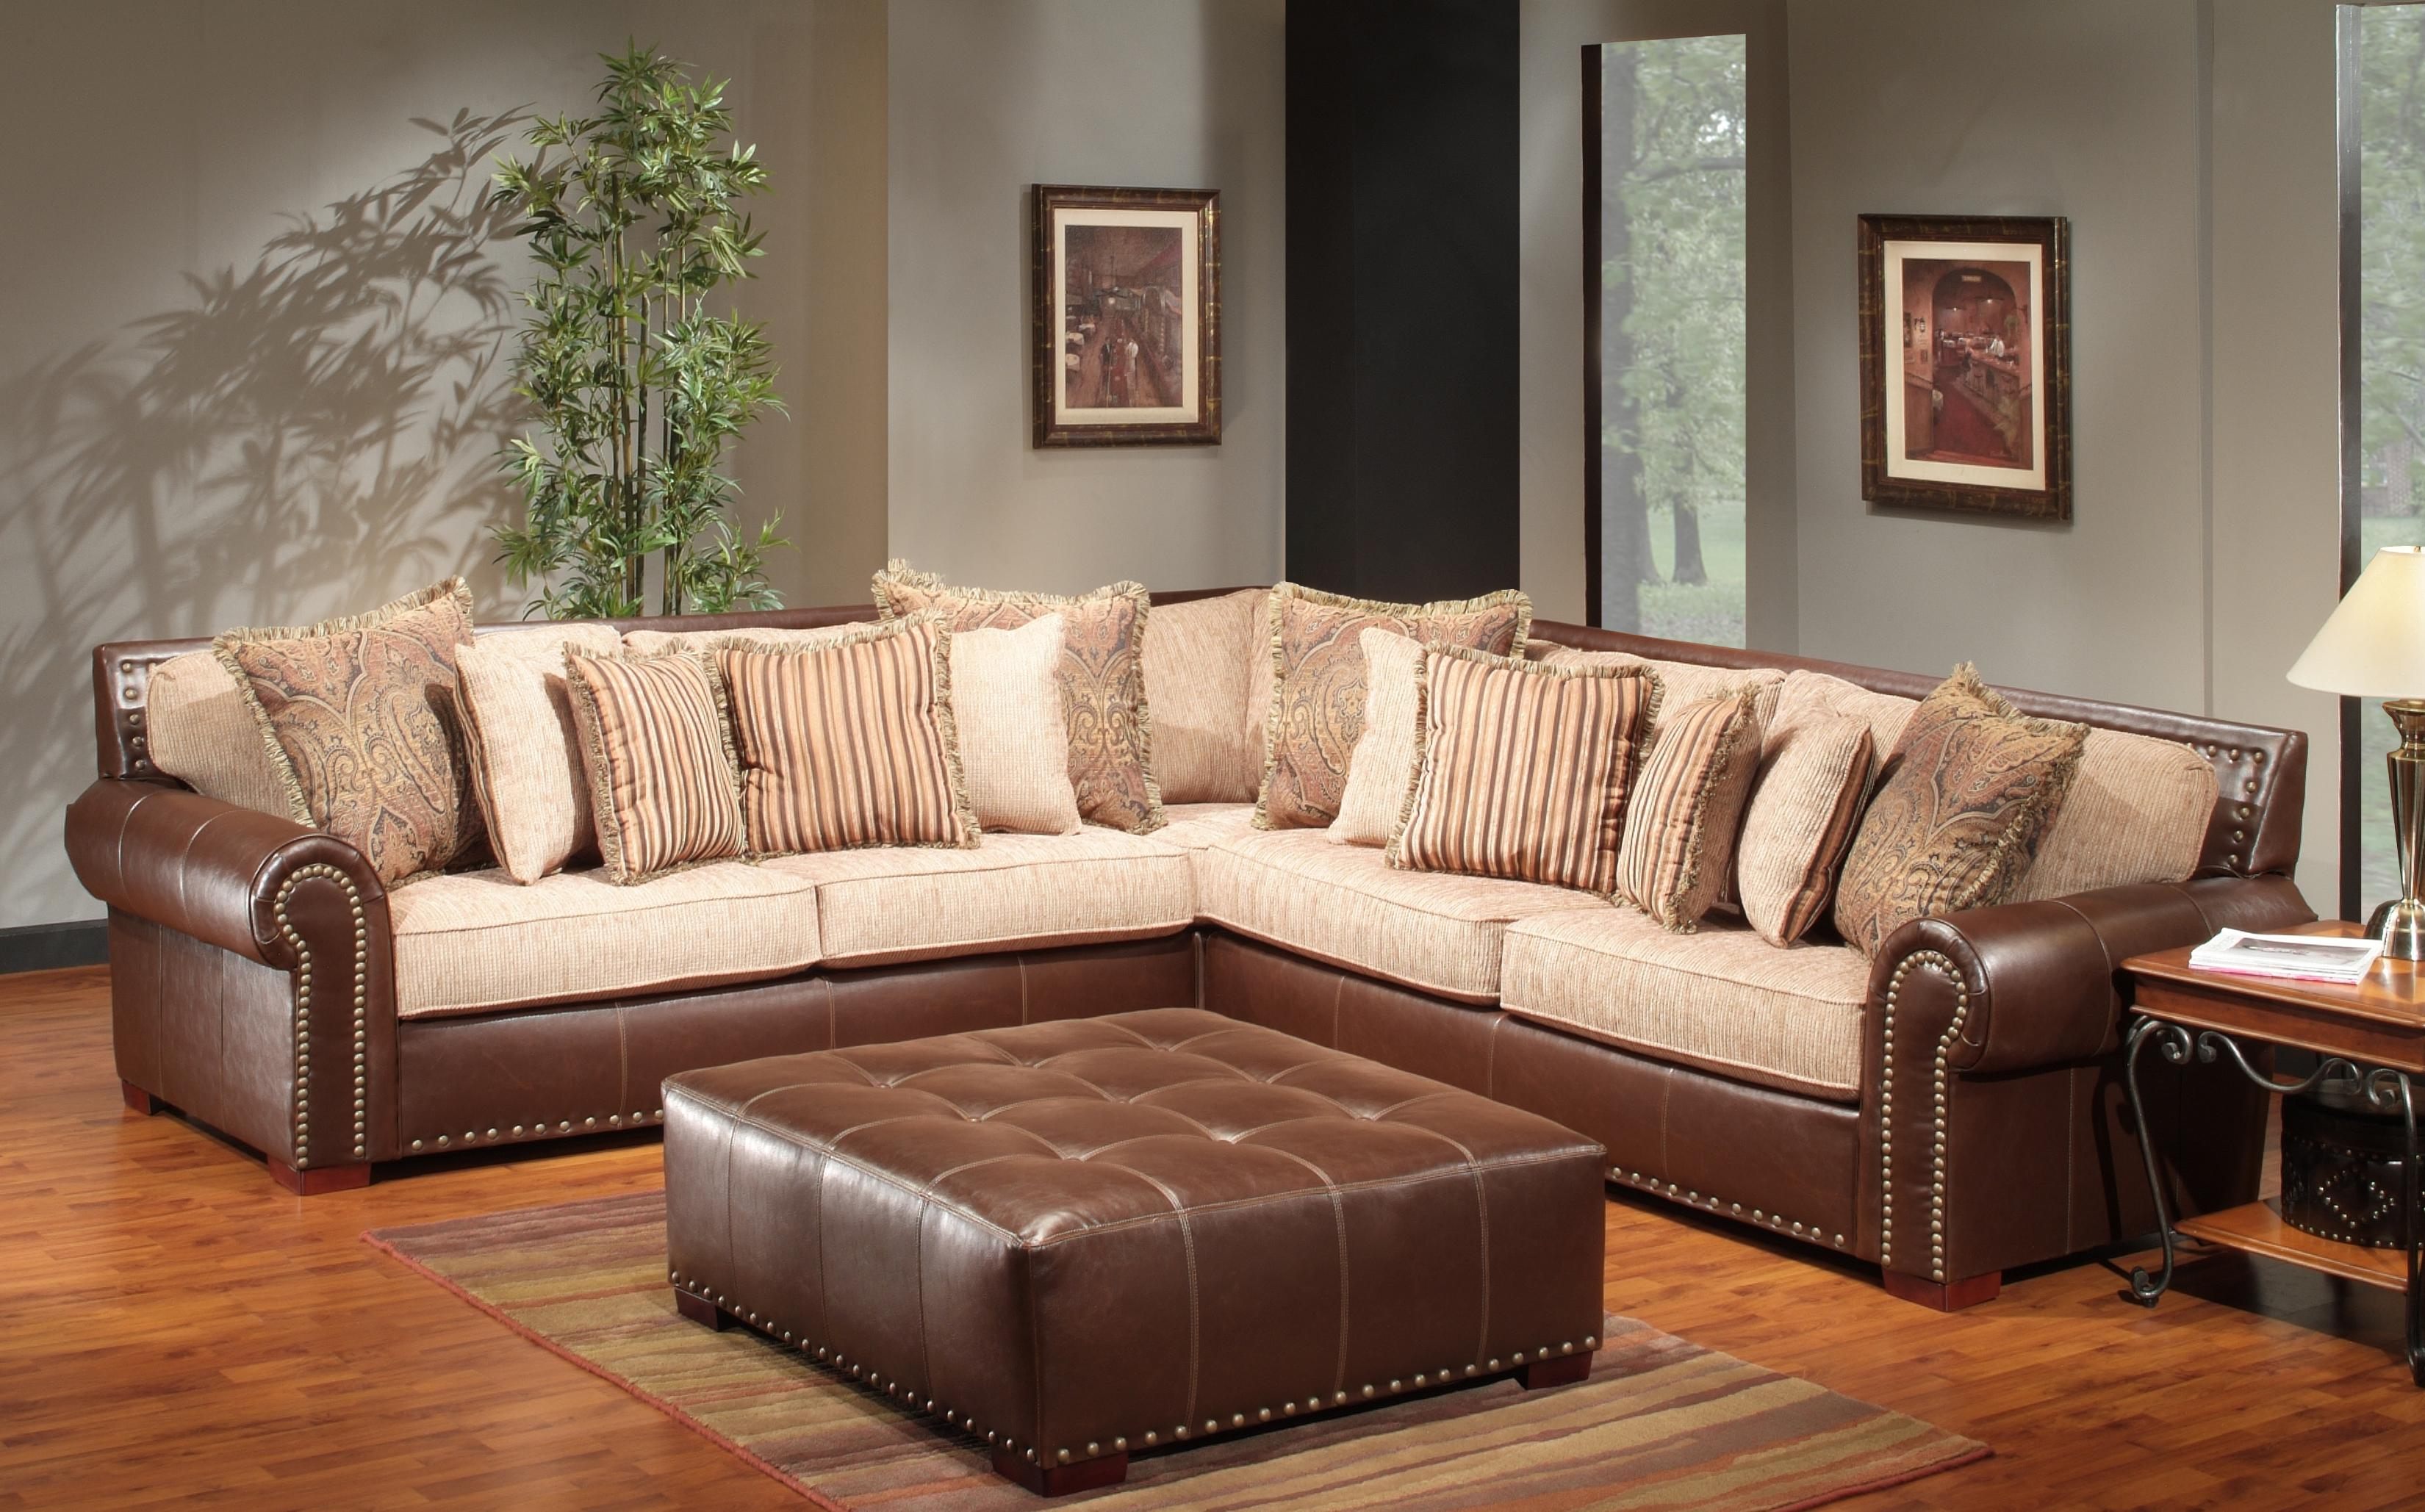 The Rose Hill Company 1973 Two Tone Sectional Sofa Furniturewebsite